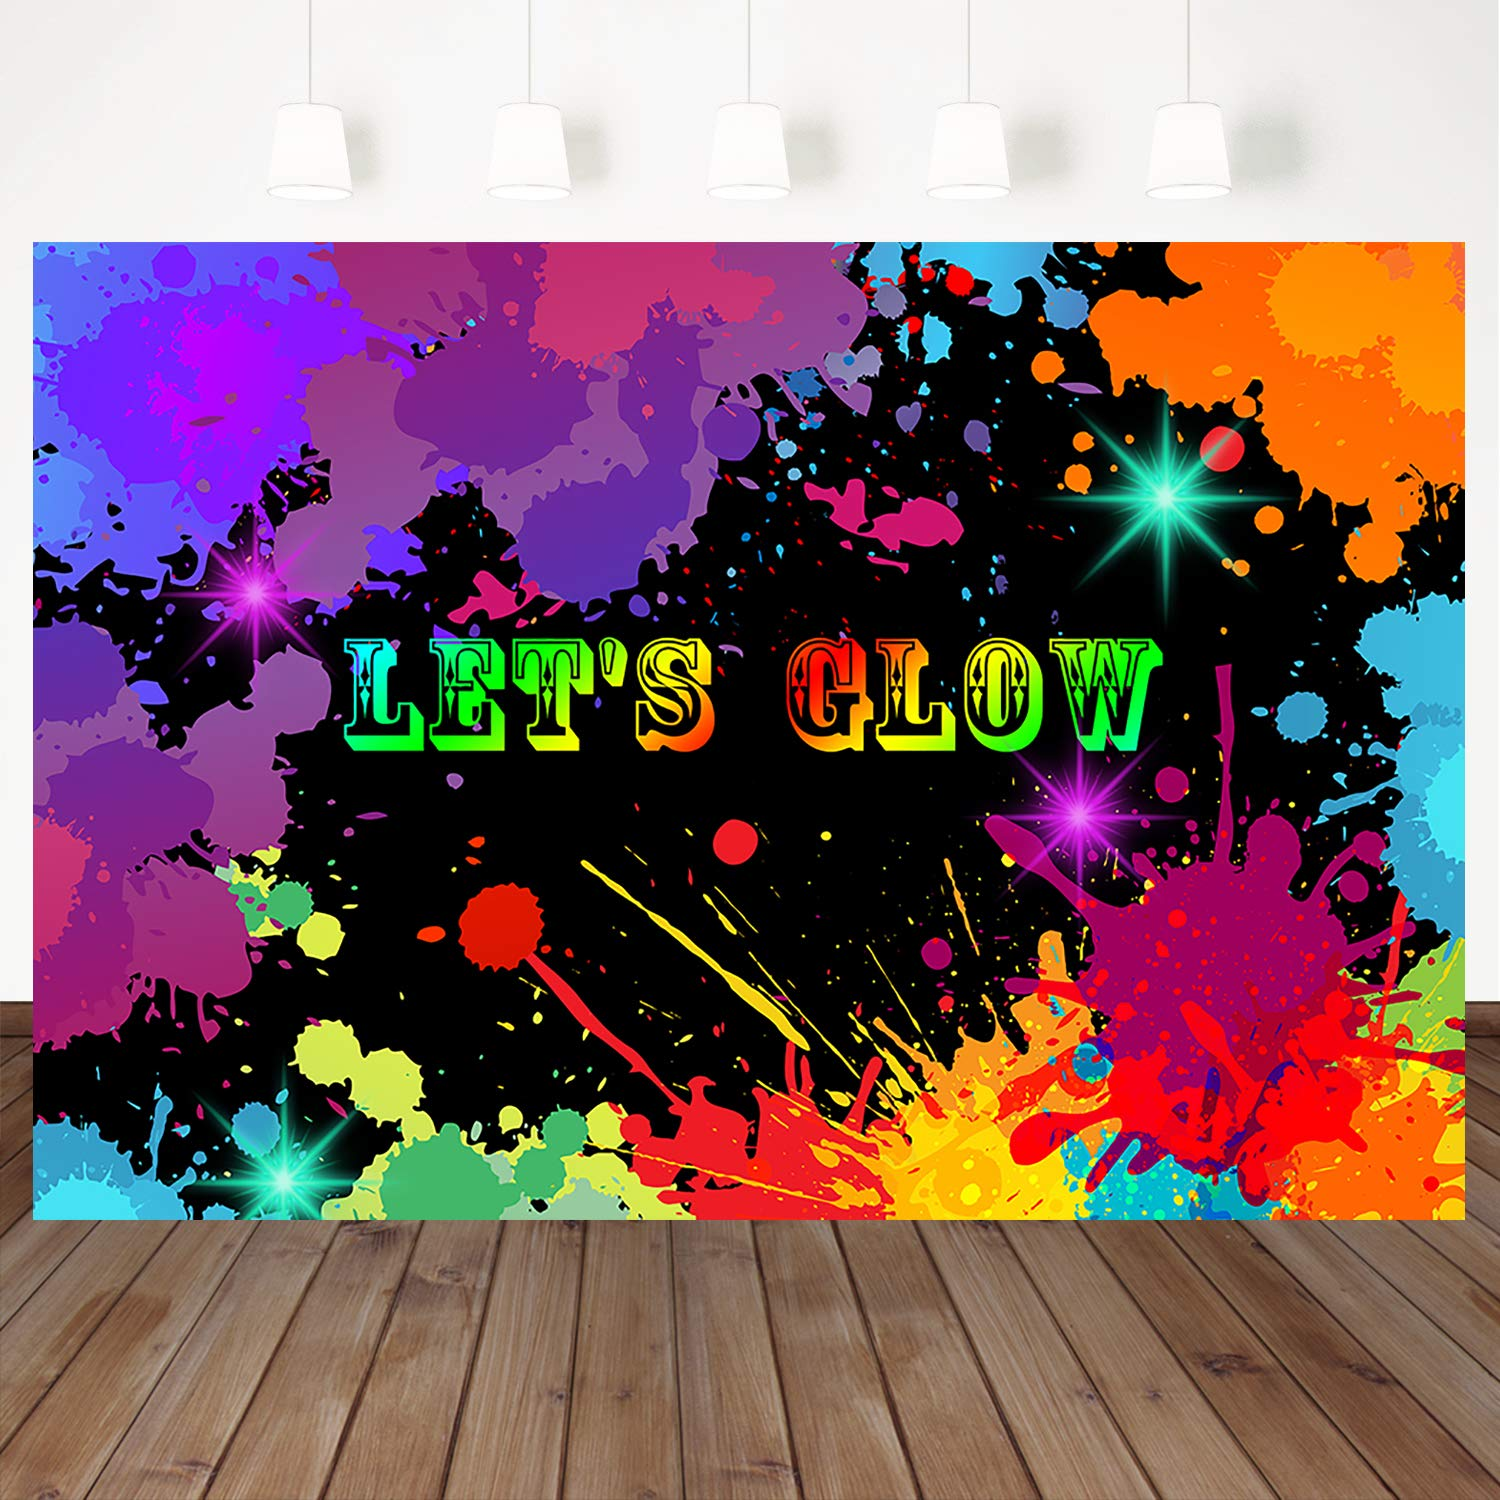 New 7x5ft Let s Glow Graffiti Wall Glow Birthday Party Decor Glow Photo Props Photography Backdrop Background w-1553